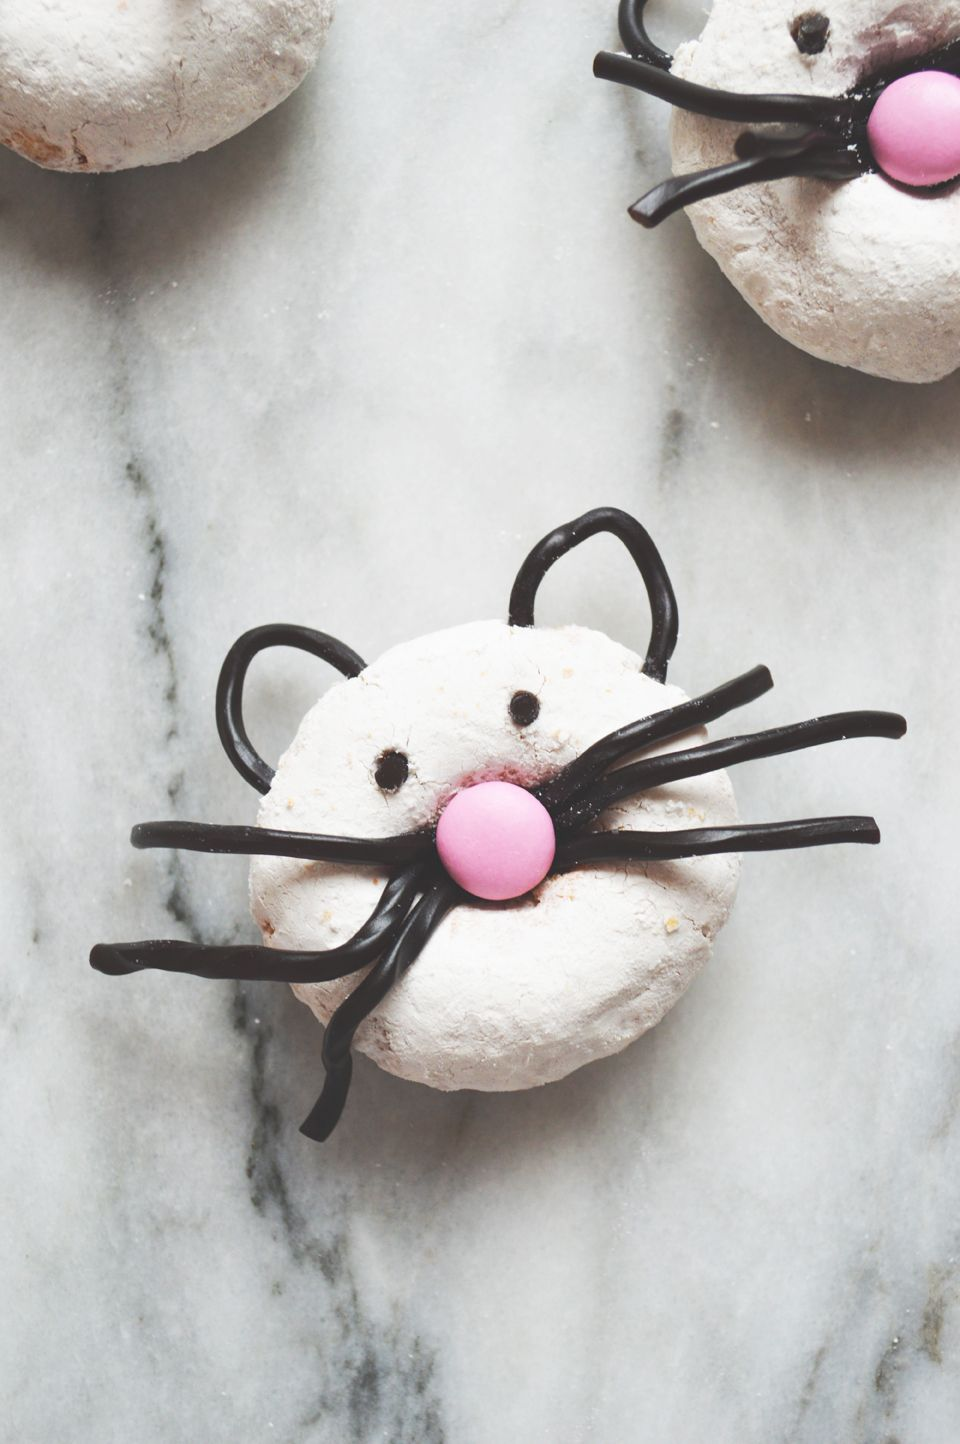 Kitty Doughnuts A Fun Craft Made With Plain Chocolate M Ms Licorice And Ready Made Powdered Doughnuts Cat Party Cat Themed Parties